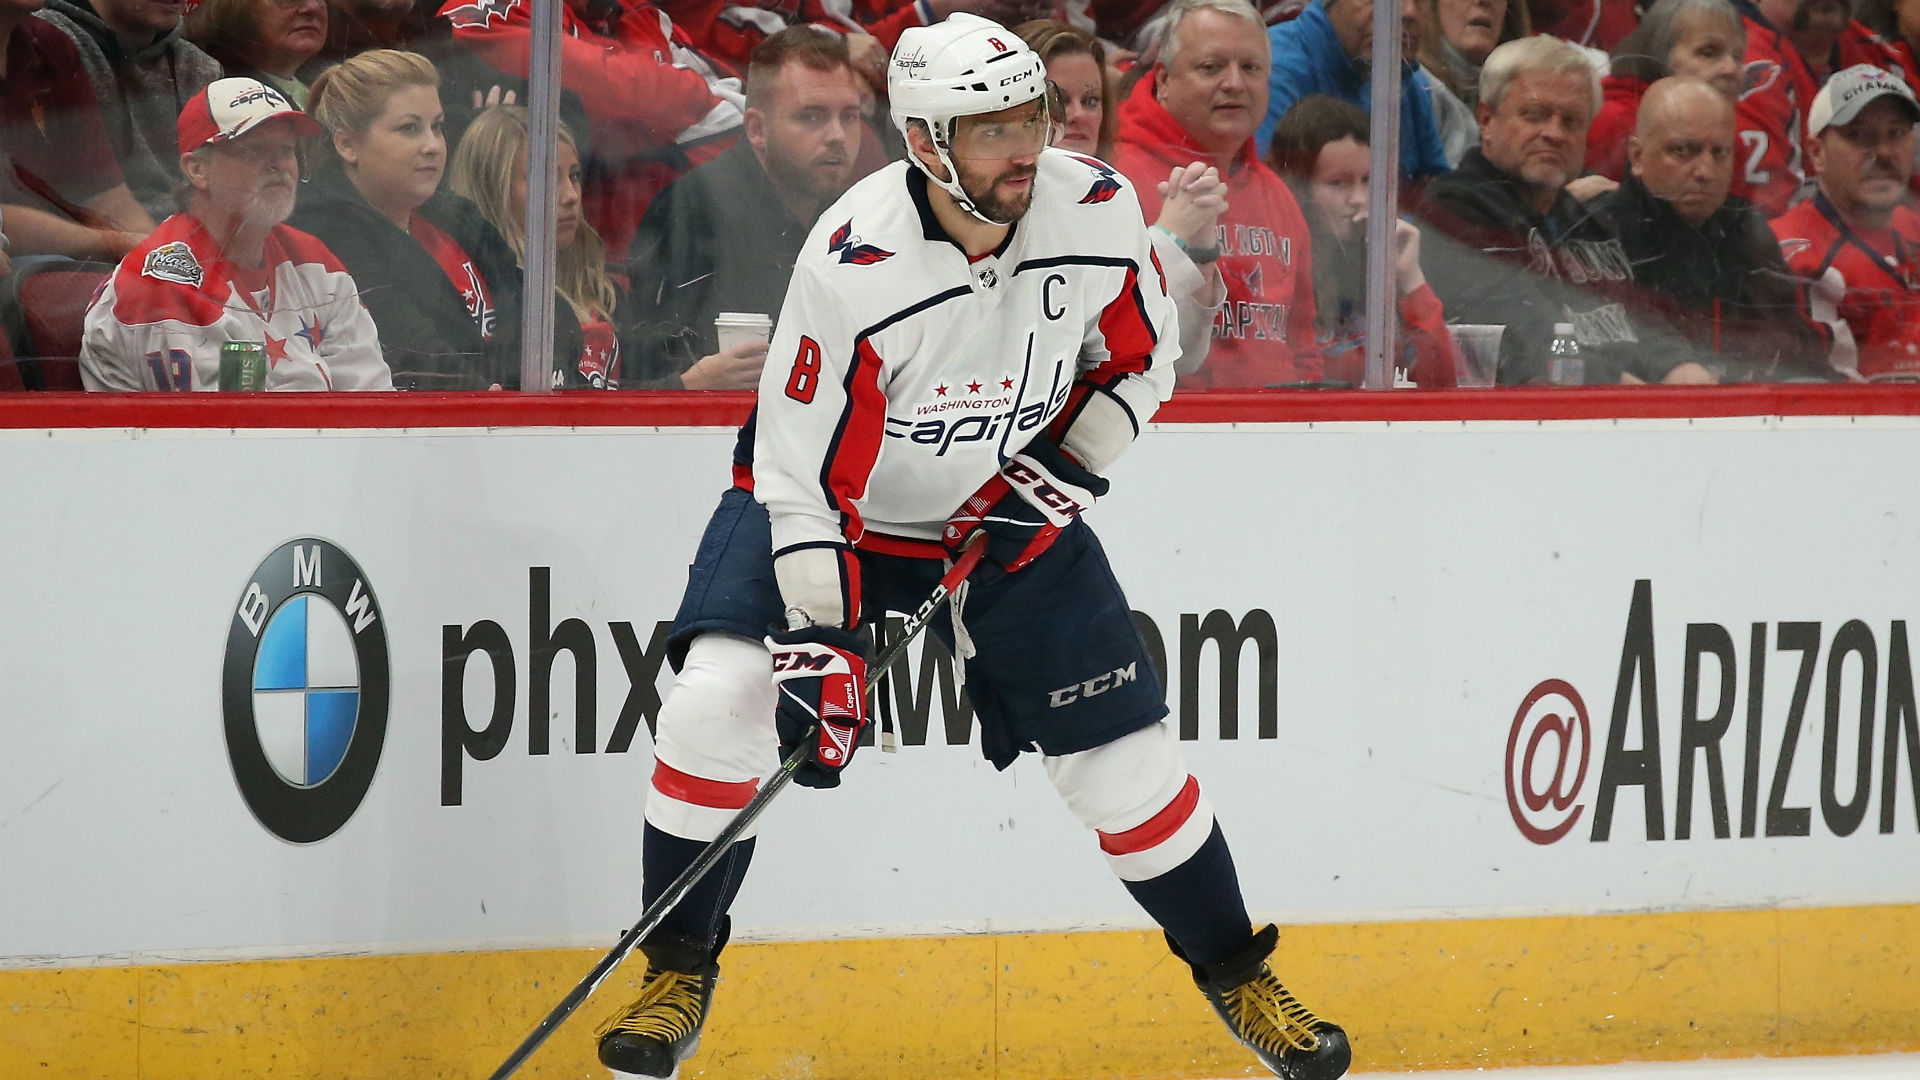 Sabres will attempt to cool off Capitals' red-hot Alex Ovechkin